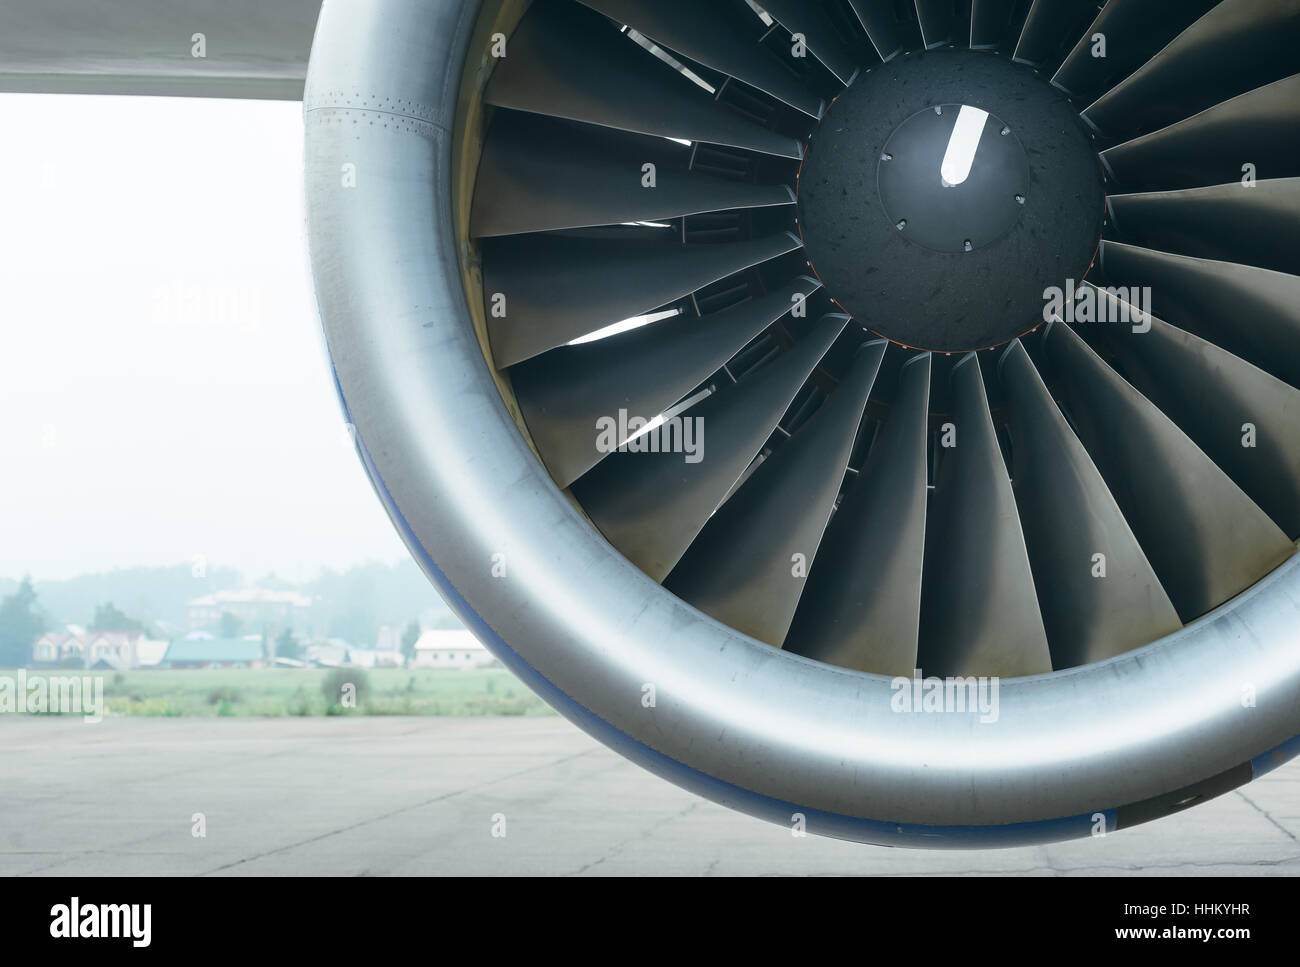 Airplane on the airfield. Screw close-up of a turbofan engine. - Stock Image